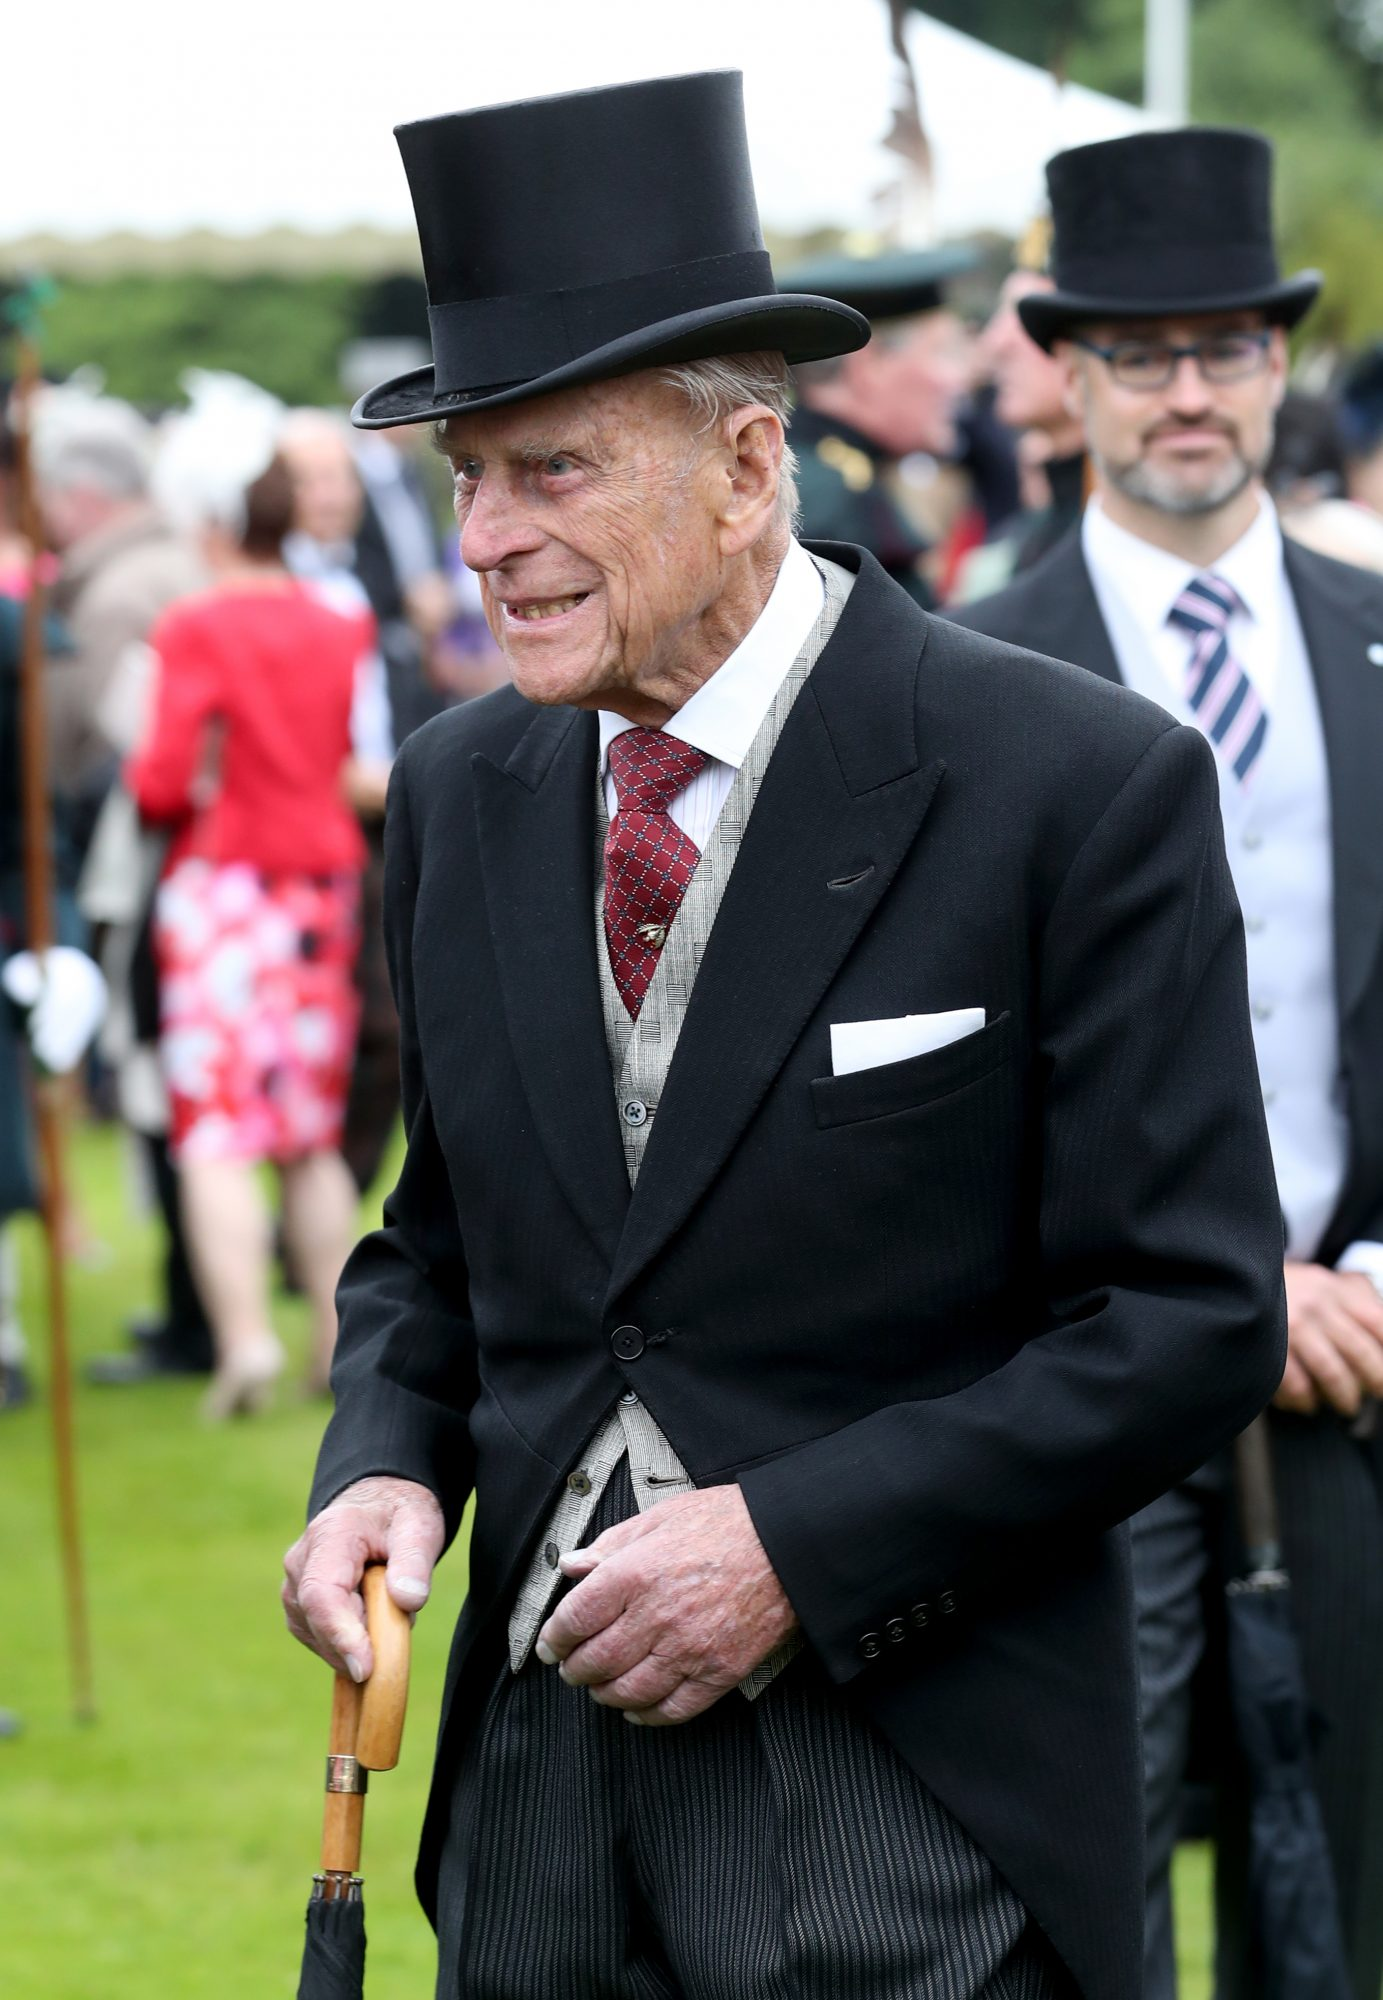 EDINBURGH, SCOTLAND - JULY 4:  Prince Philip, Duke of Edinburgh attends the annual garden party at the Palace of Holyroodhouse on July 4, 2017  in Edinburgh, Scotland. (Photo by Jane Barlow - WPA Pool/Getty Images)